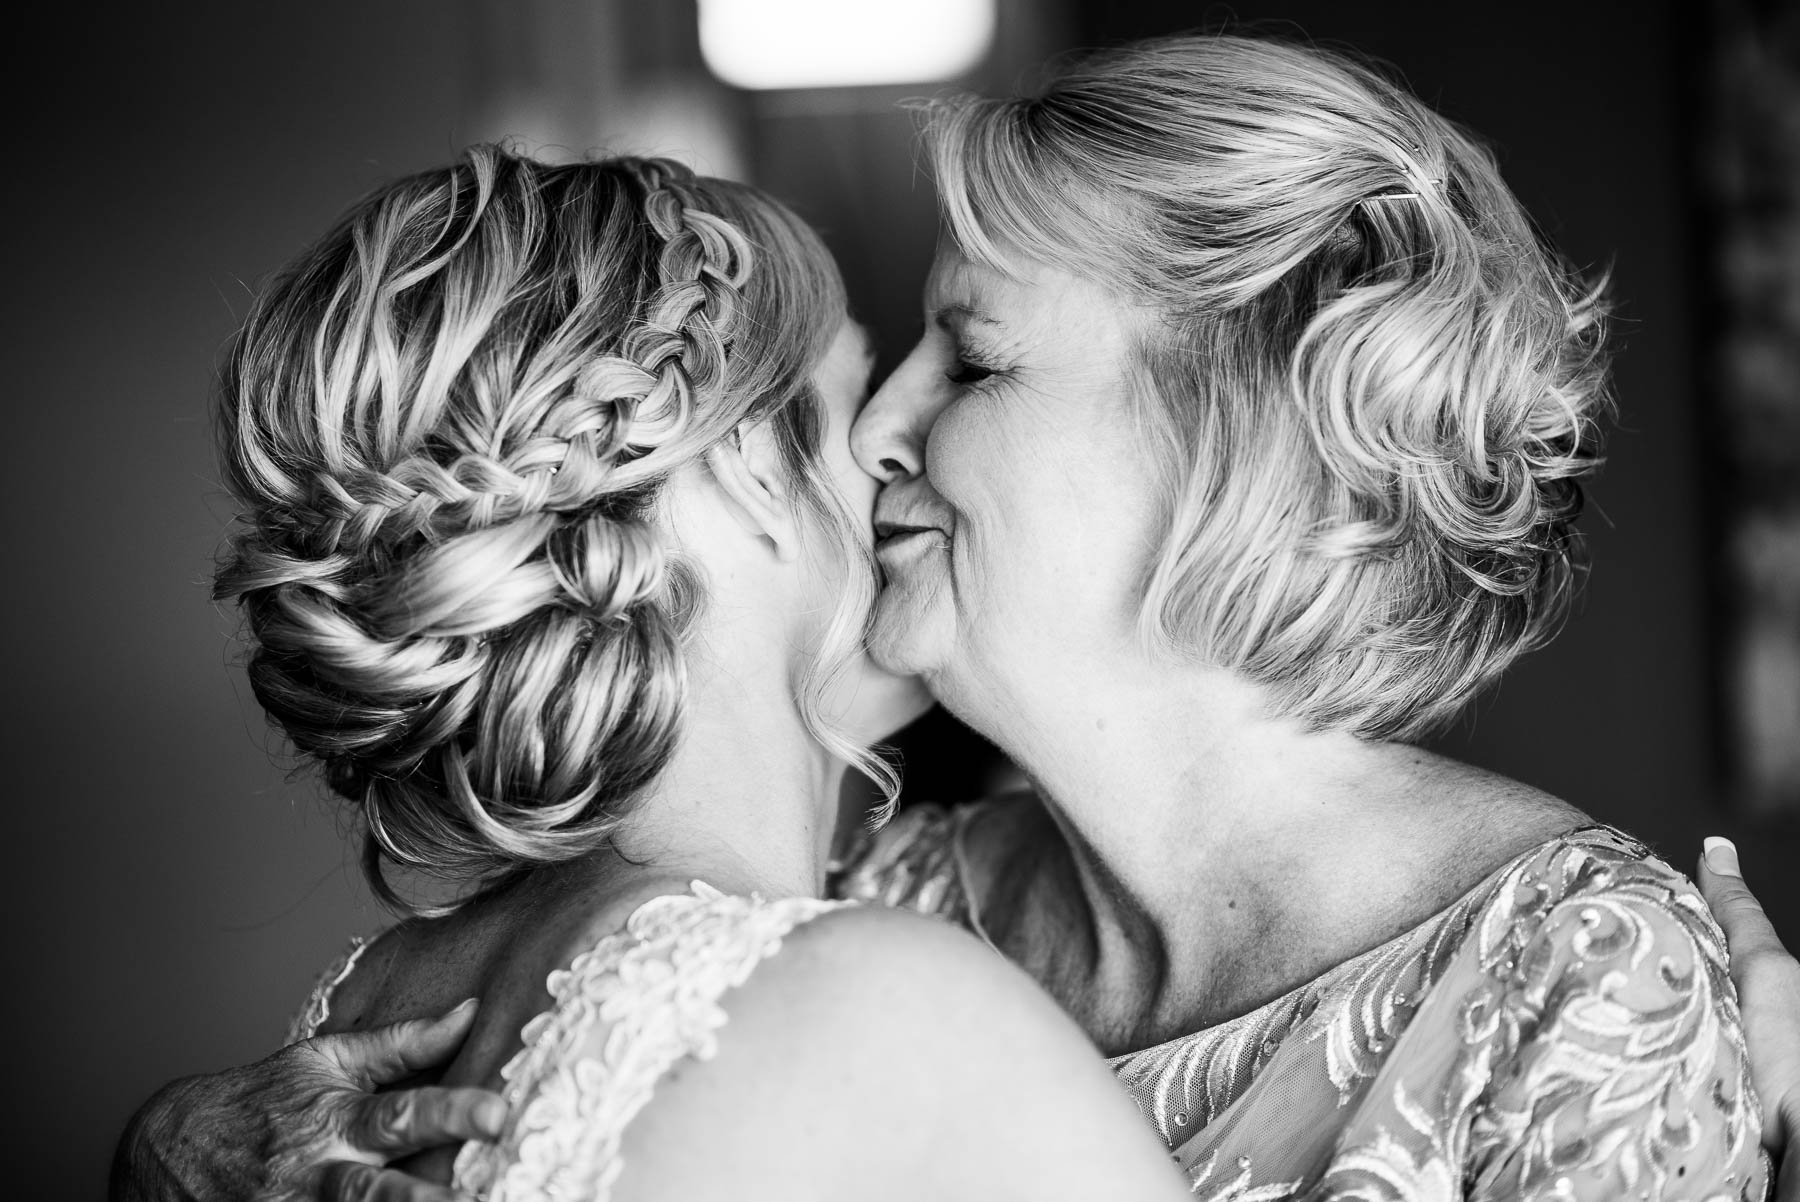 Emotional moment between mother and bride before before a St. Charles Country Club wedding.